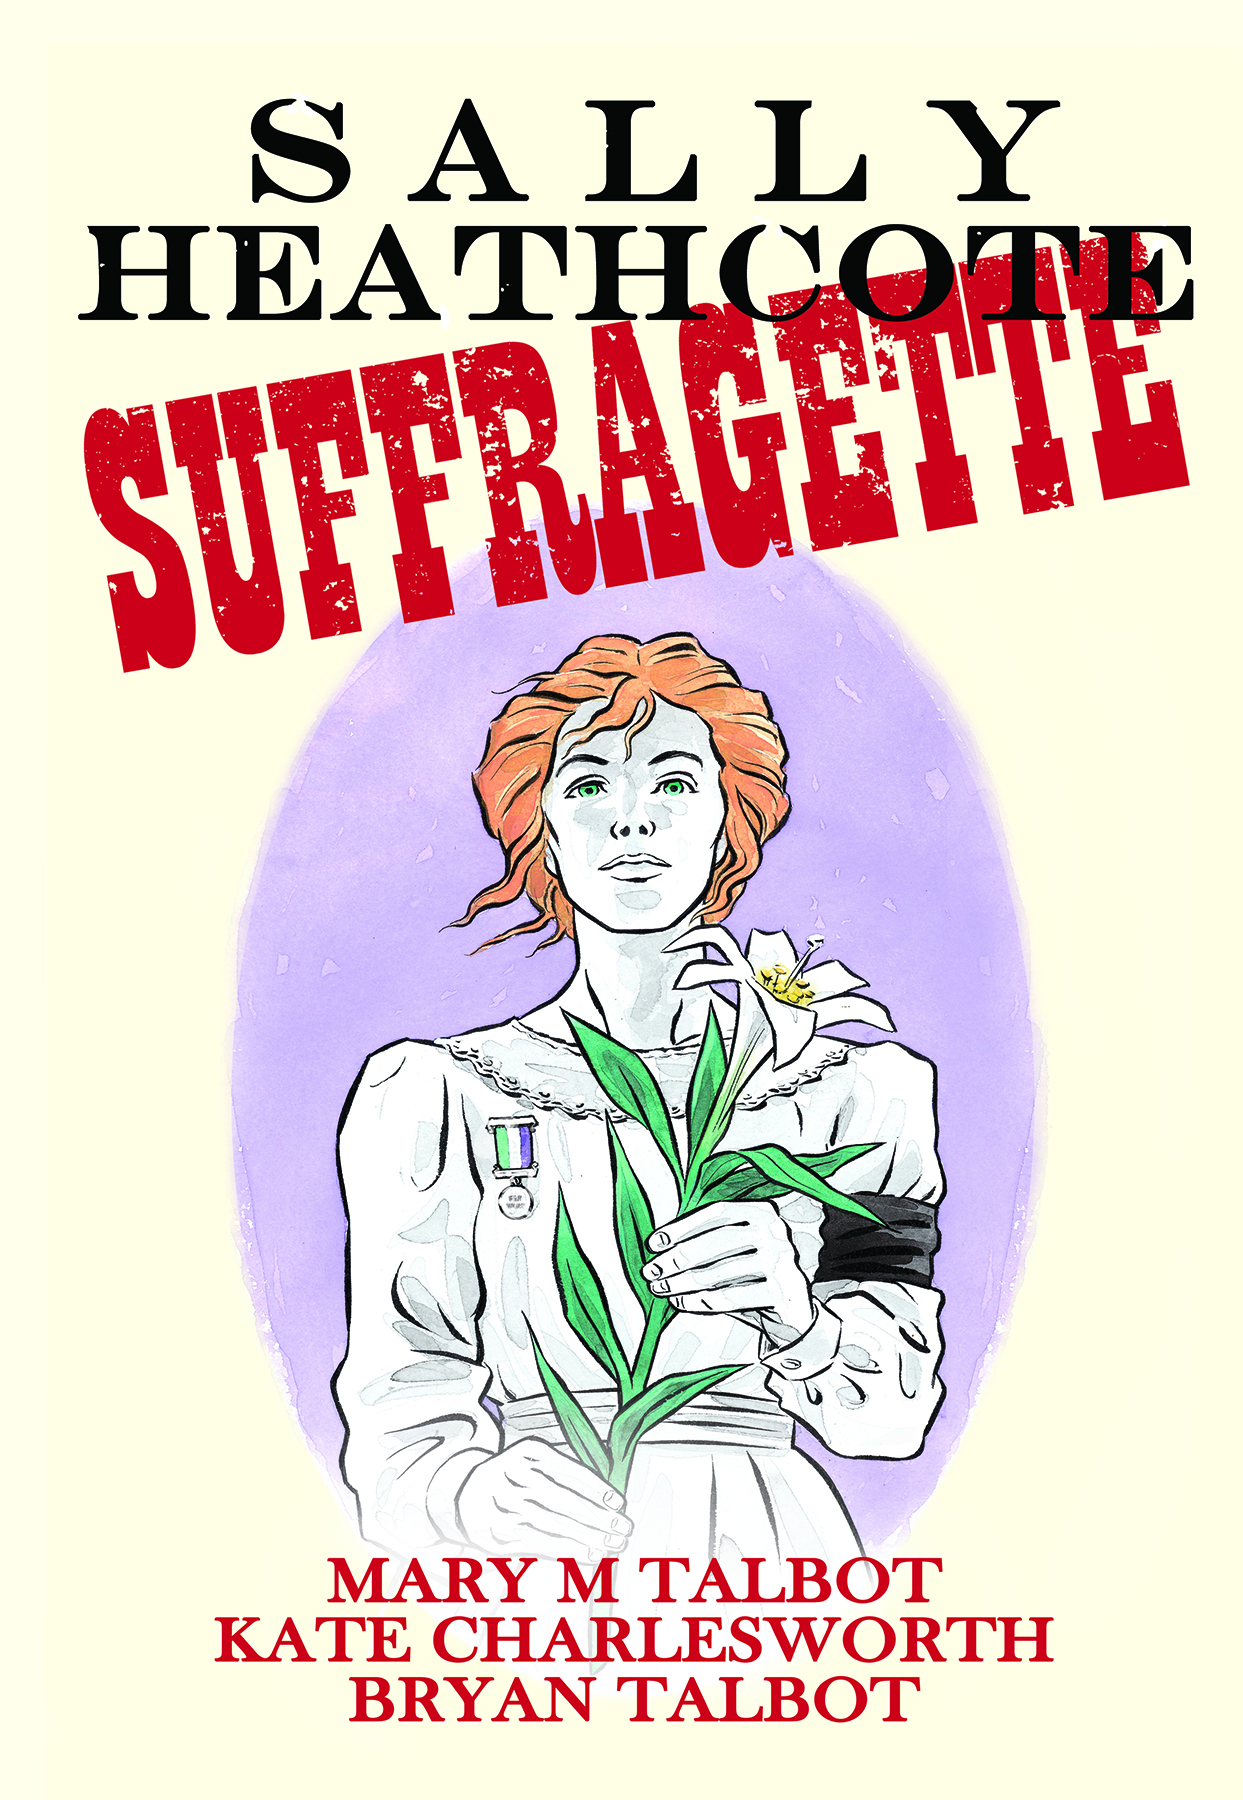 SALLY HEATHCOTE SUFFRAGETTE HC